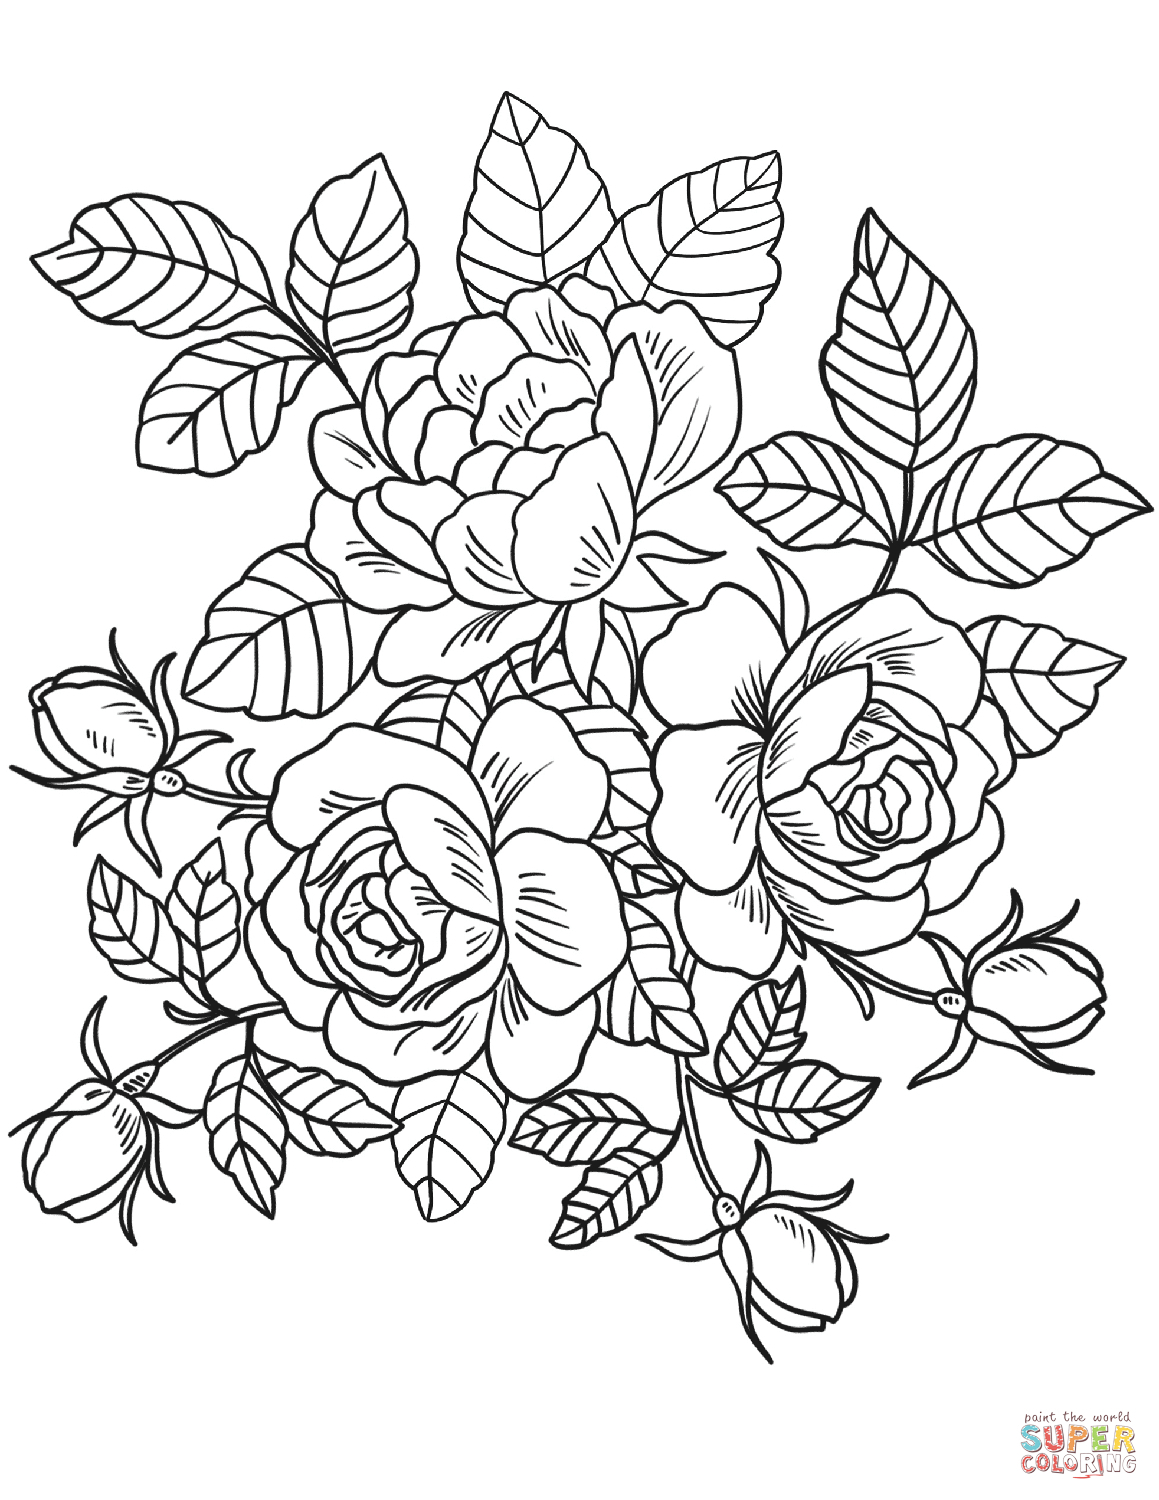 Flowers Coloring Pages Roses Flowers Coloring Page Free Printable - Free Printable Roses